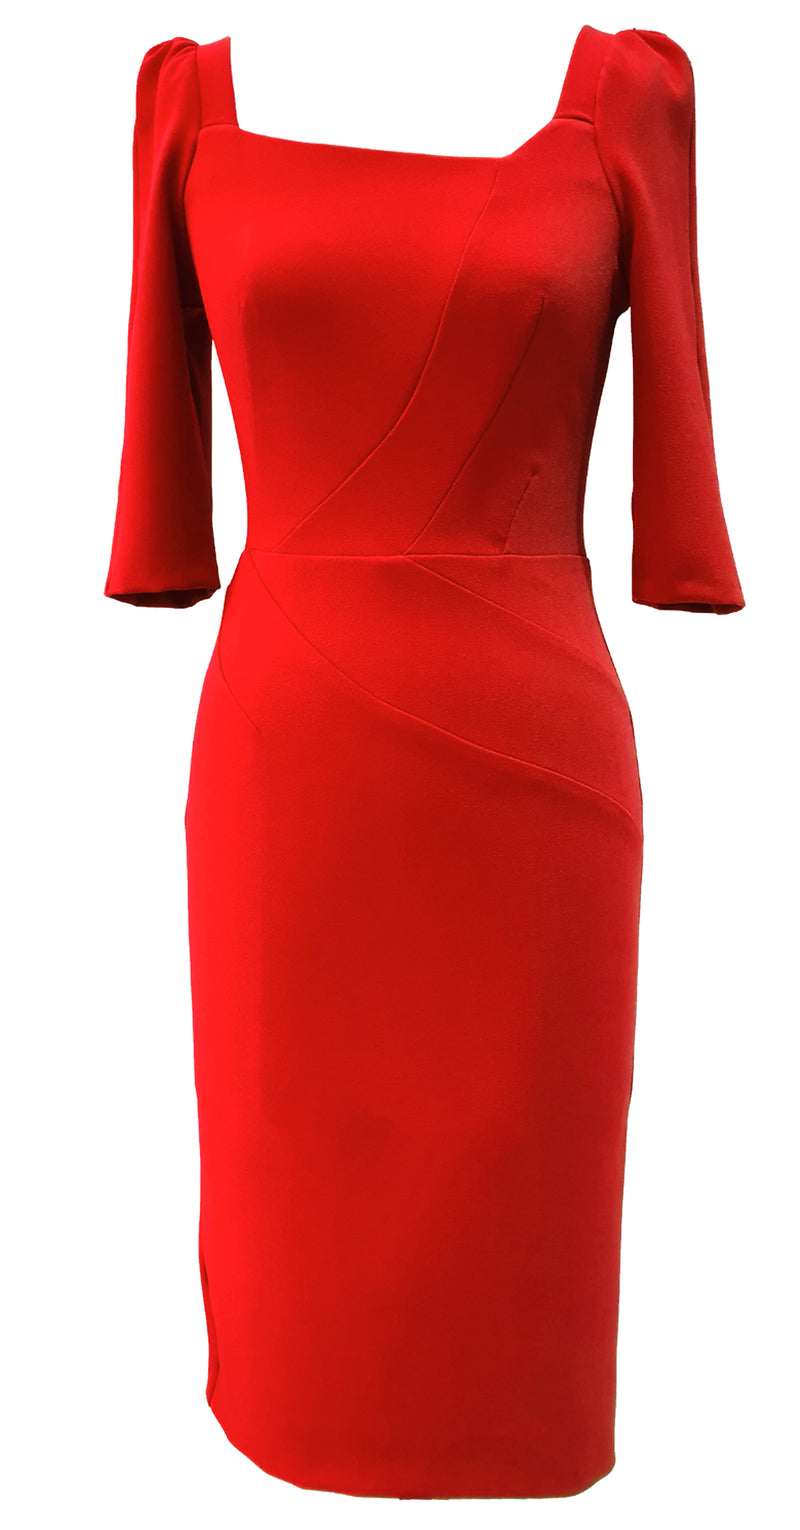 Celine Dress DRC346 Red Crepe